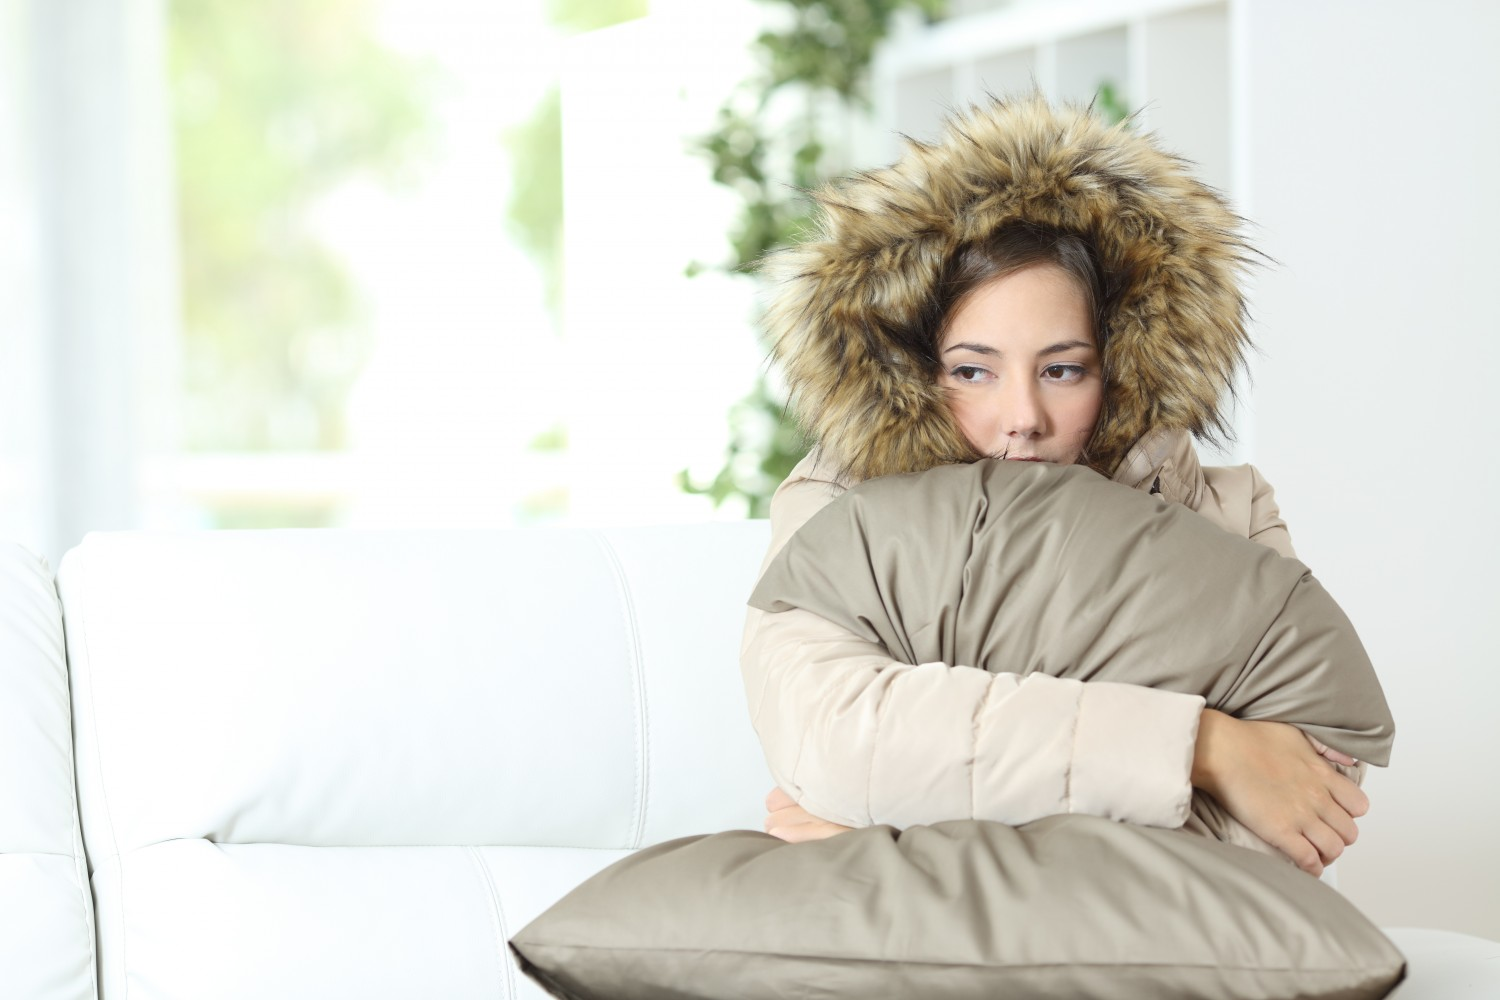 Sleep better by keeping your bedroom cool